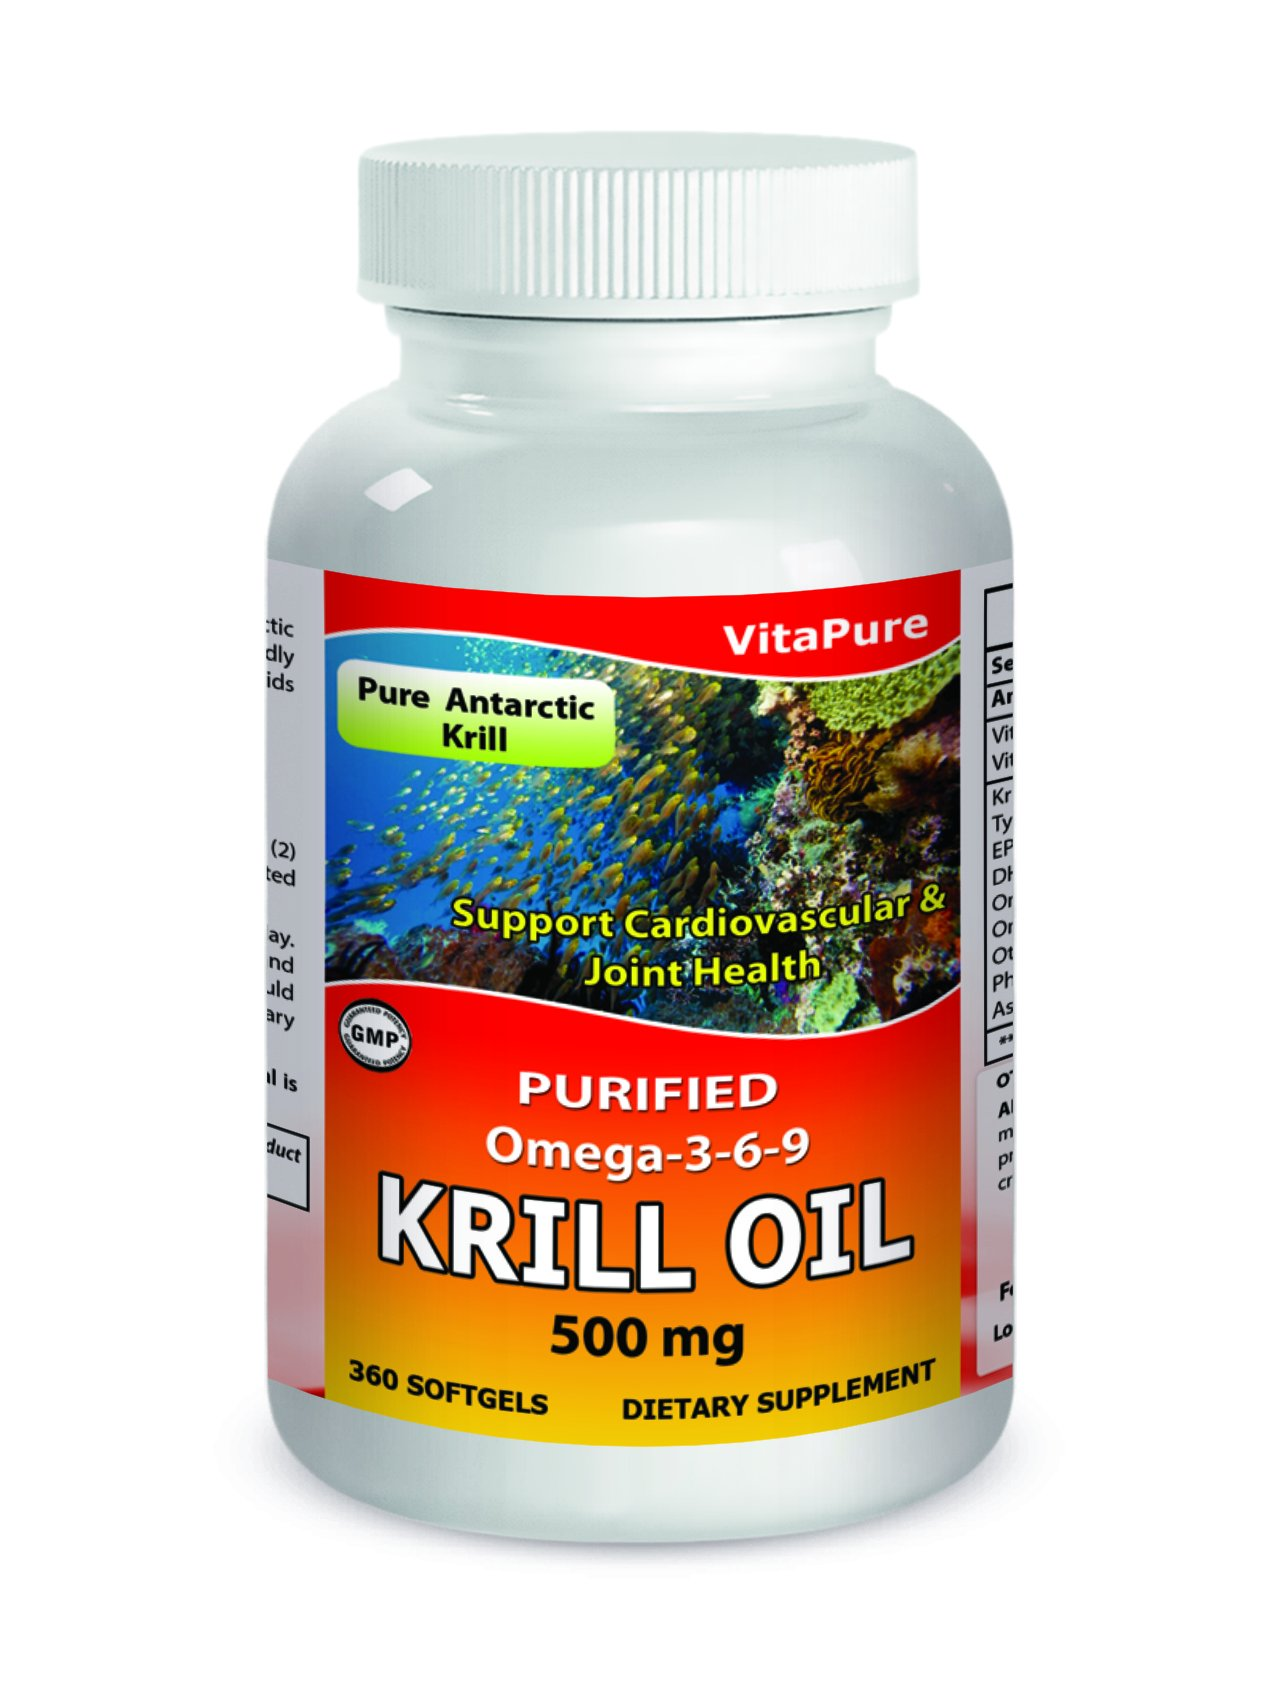 Vitapure Krill Oil 500 mg 360 Softgels